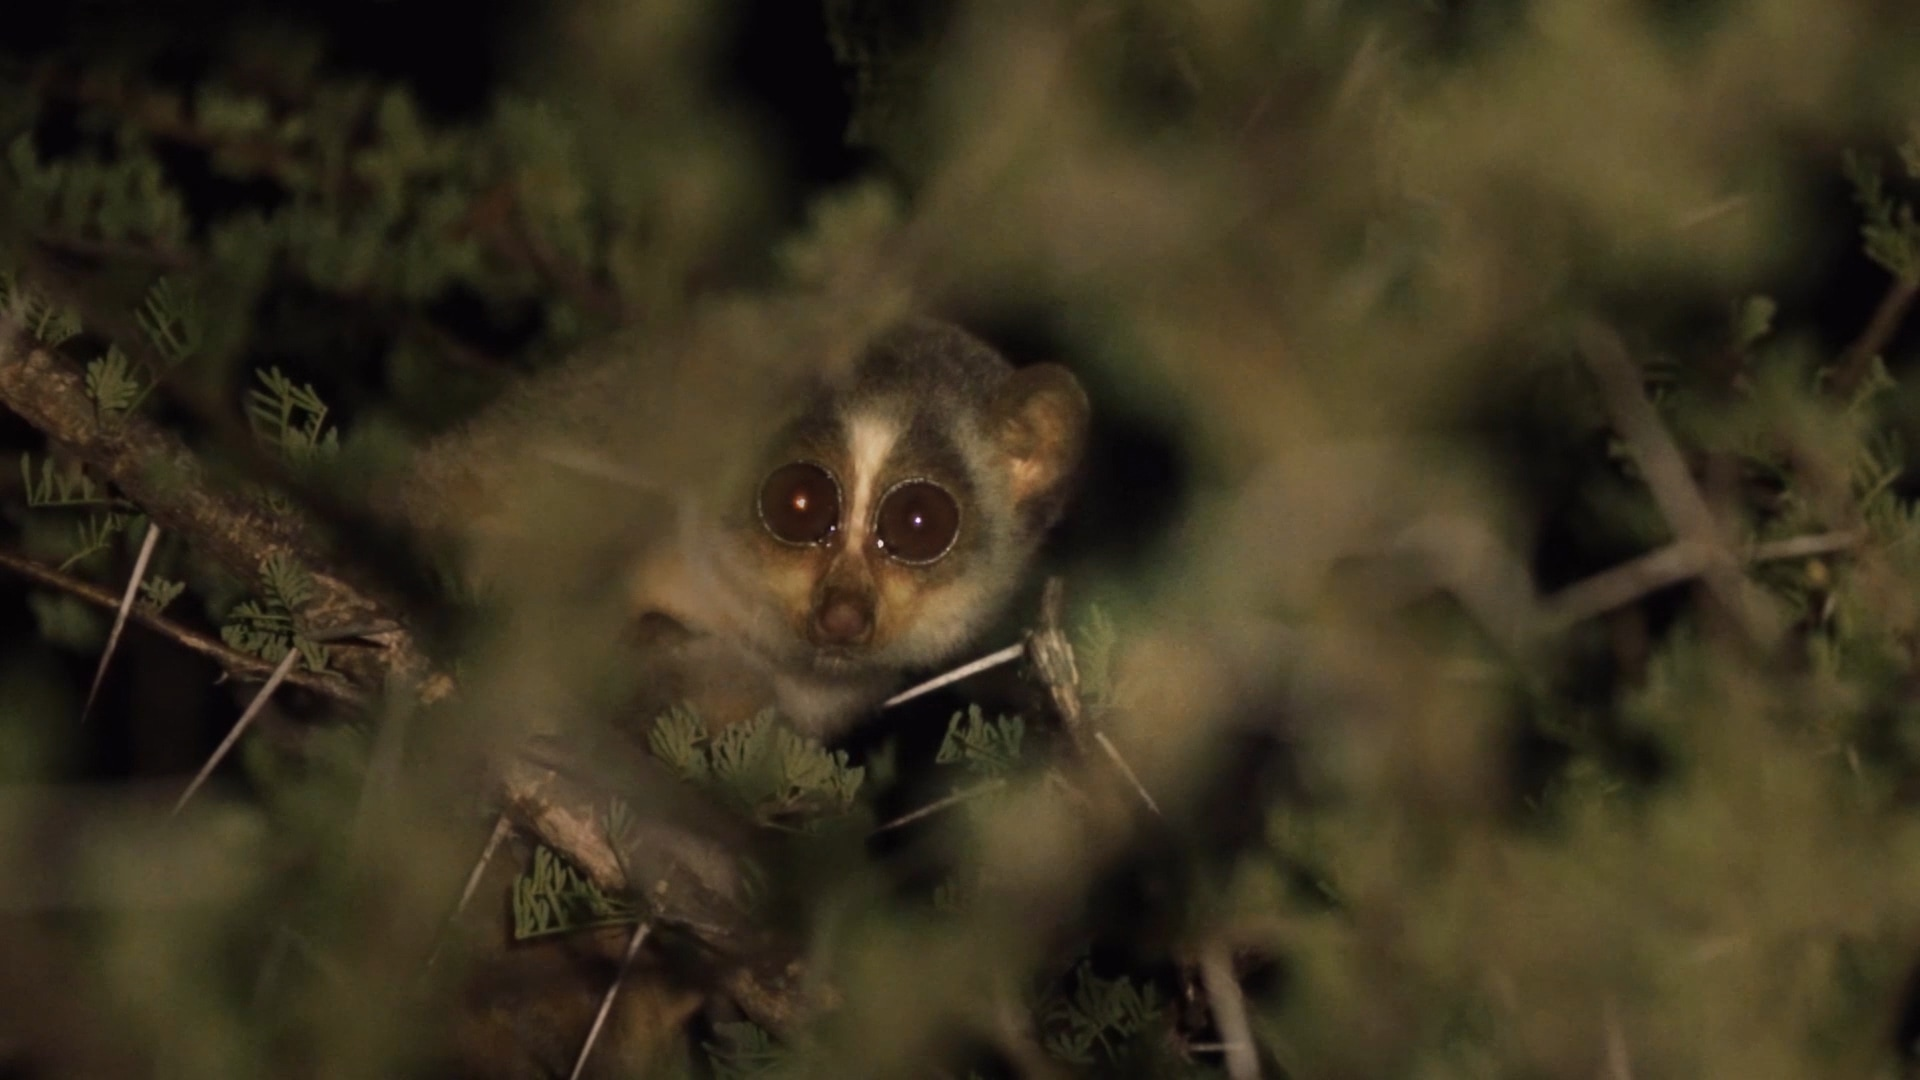 Gray Slender Loris: The Endearing Secret Creature of the Night Forest